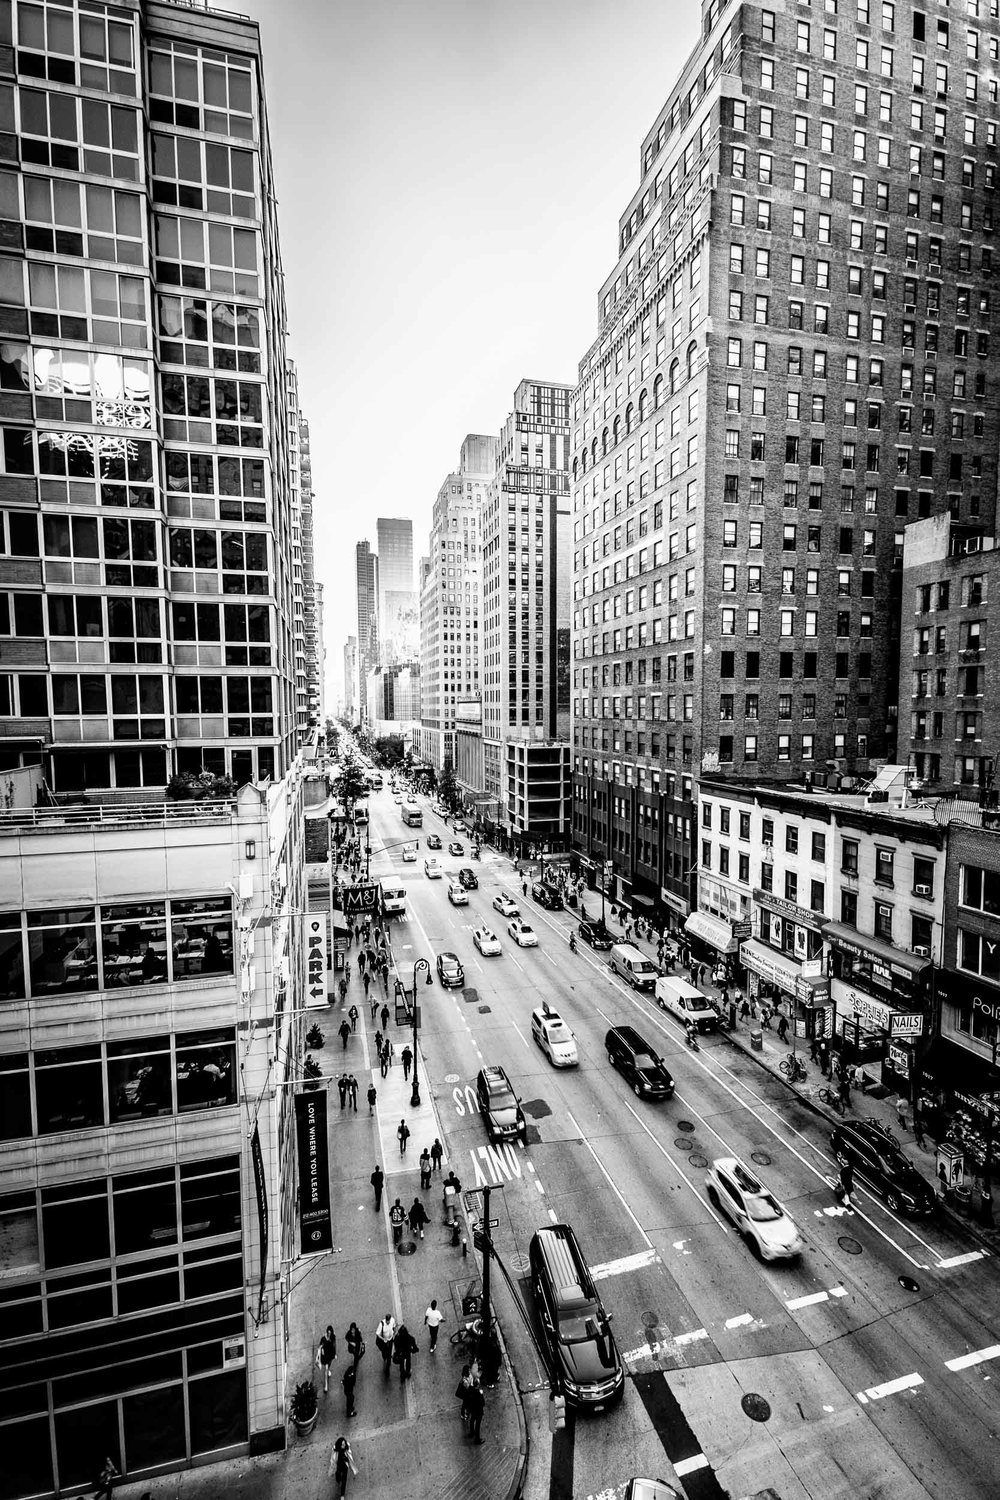 The view up 6th Avenue from the roof of the hotel.